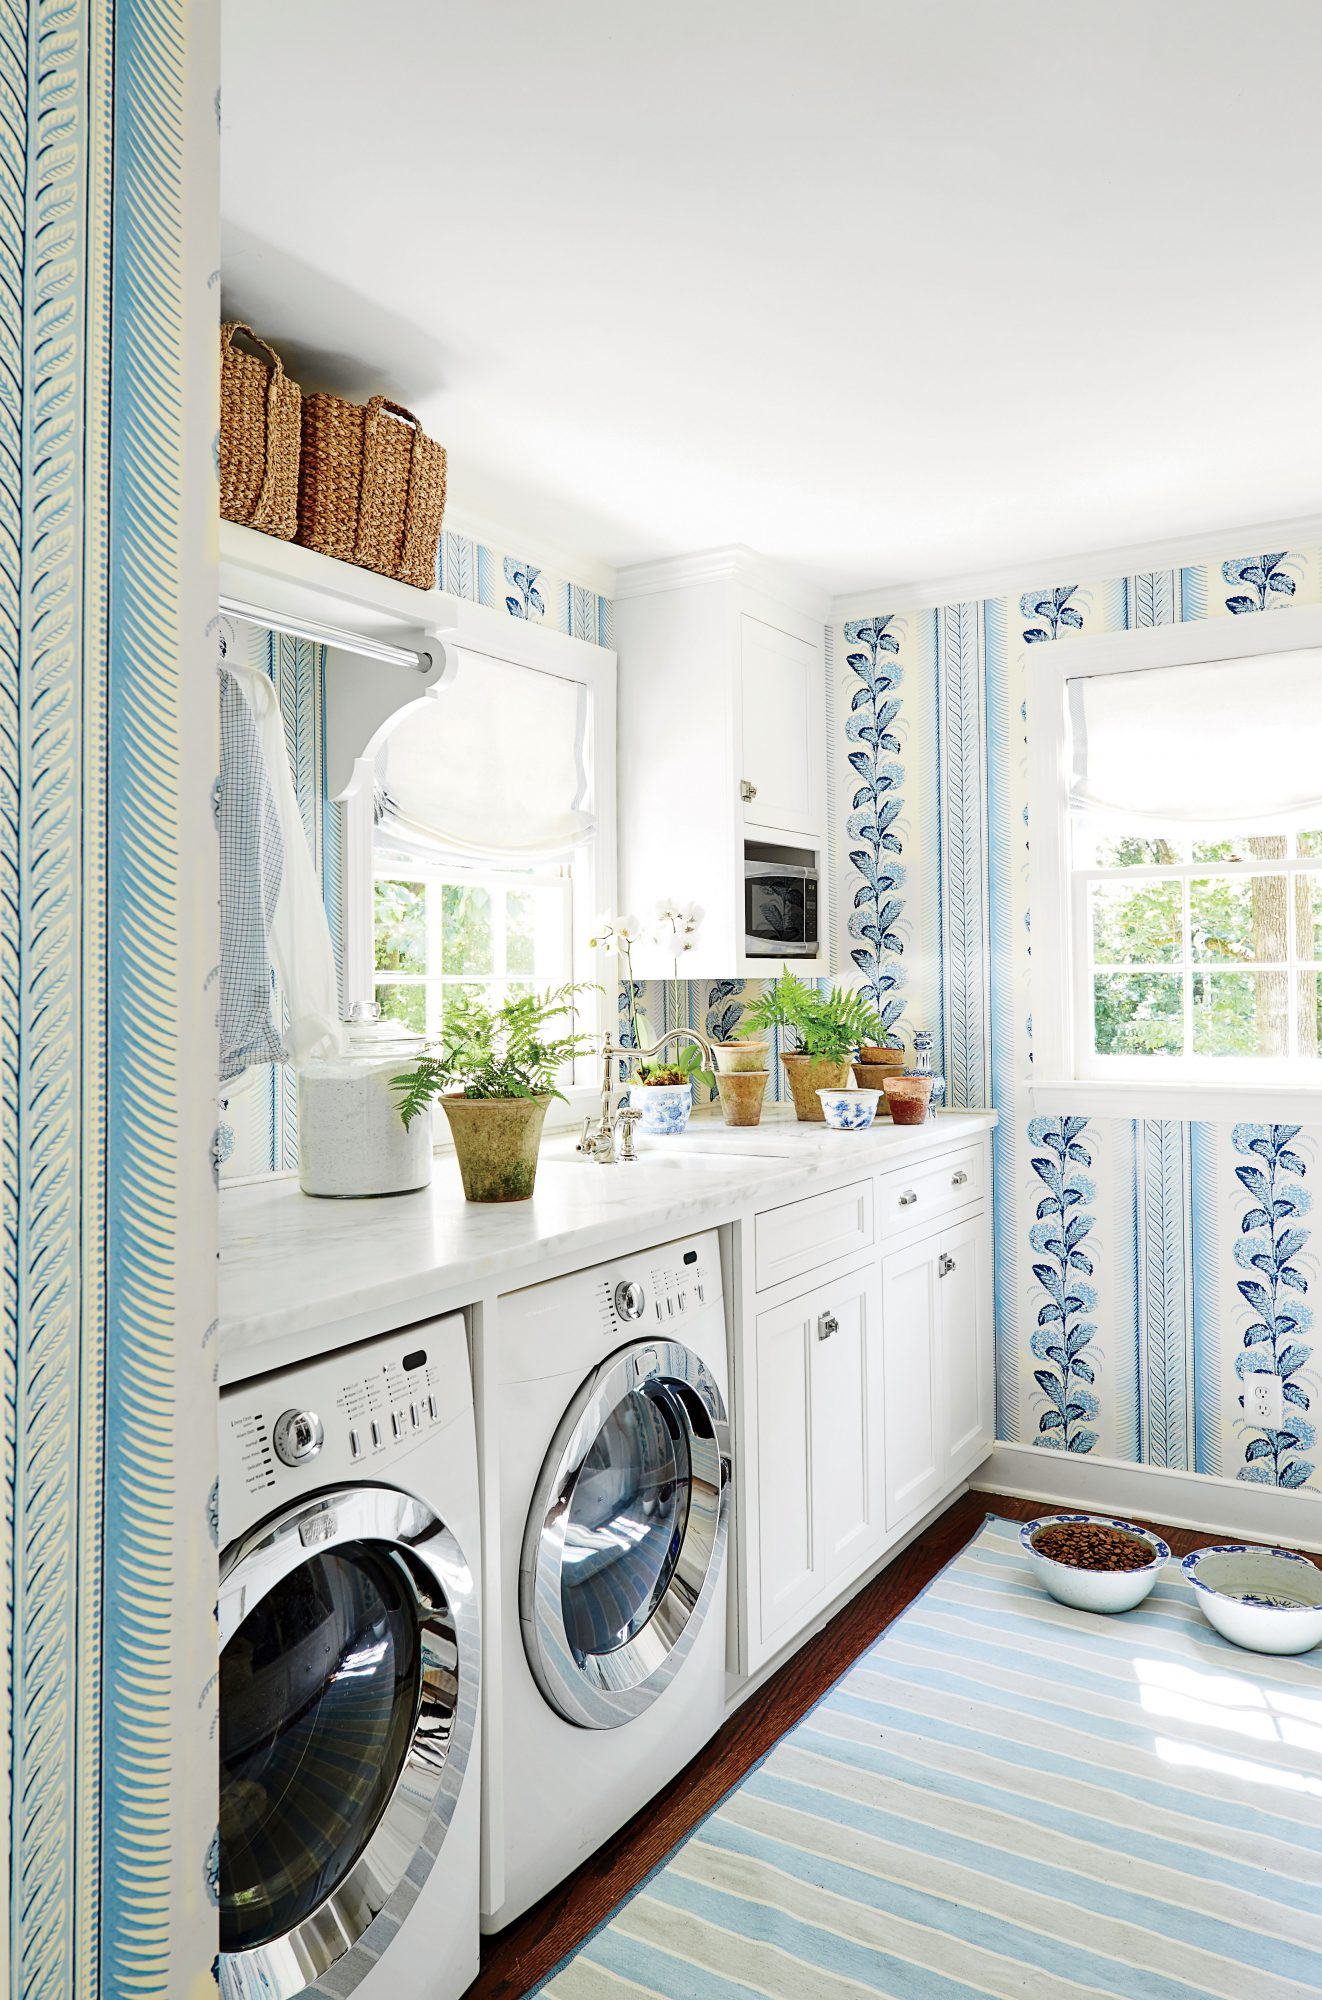 Laundry room with blue wallpaper and small potted plants